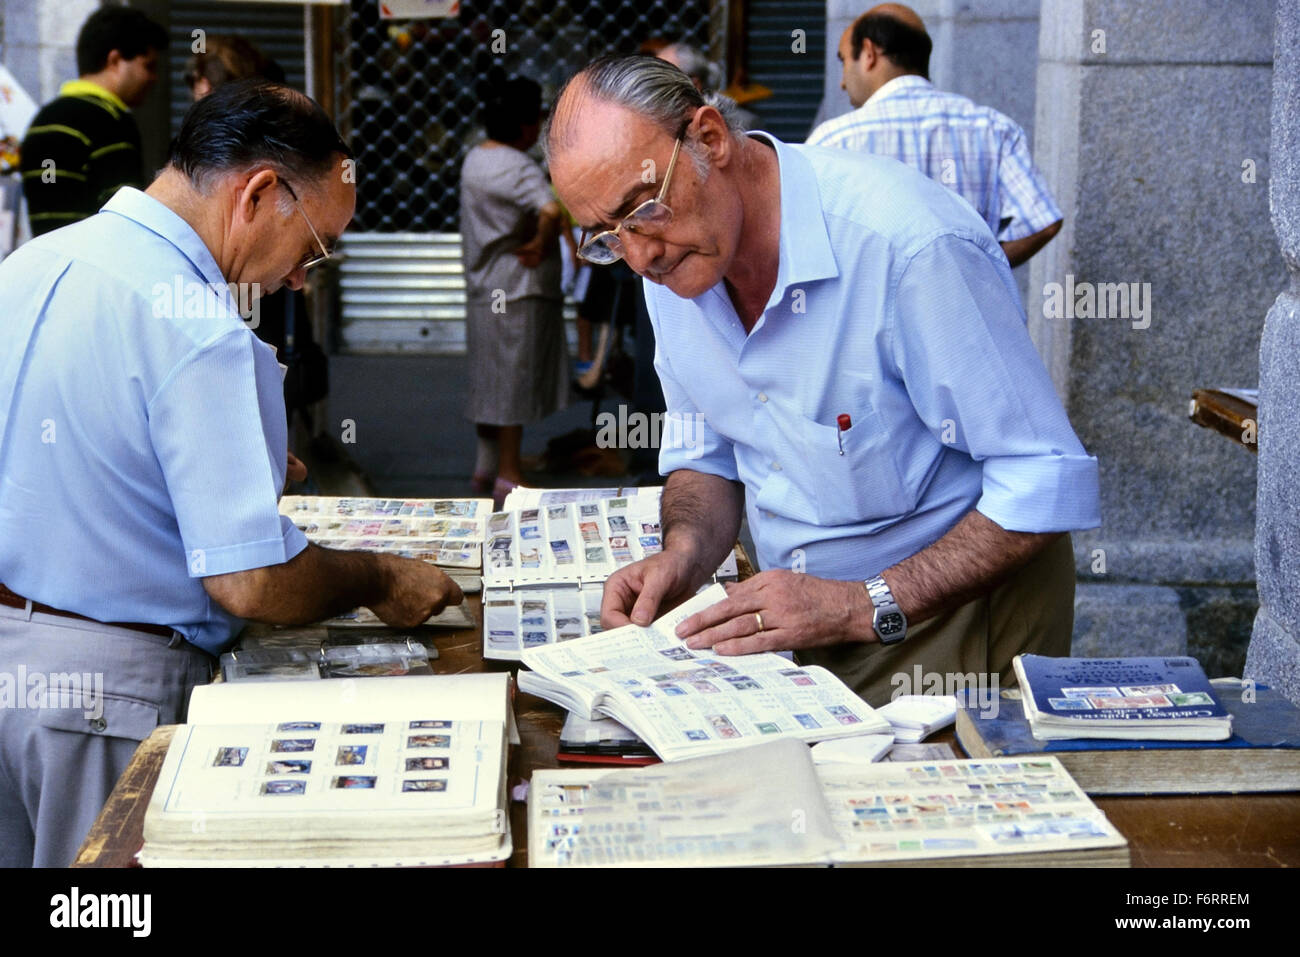 The Sunday Stamp and Coin market in Plaza Mayor. Madrid. Spain - Stock Image